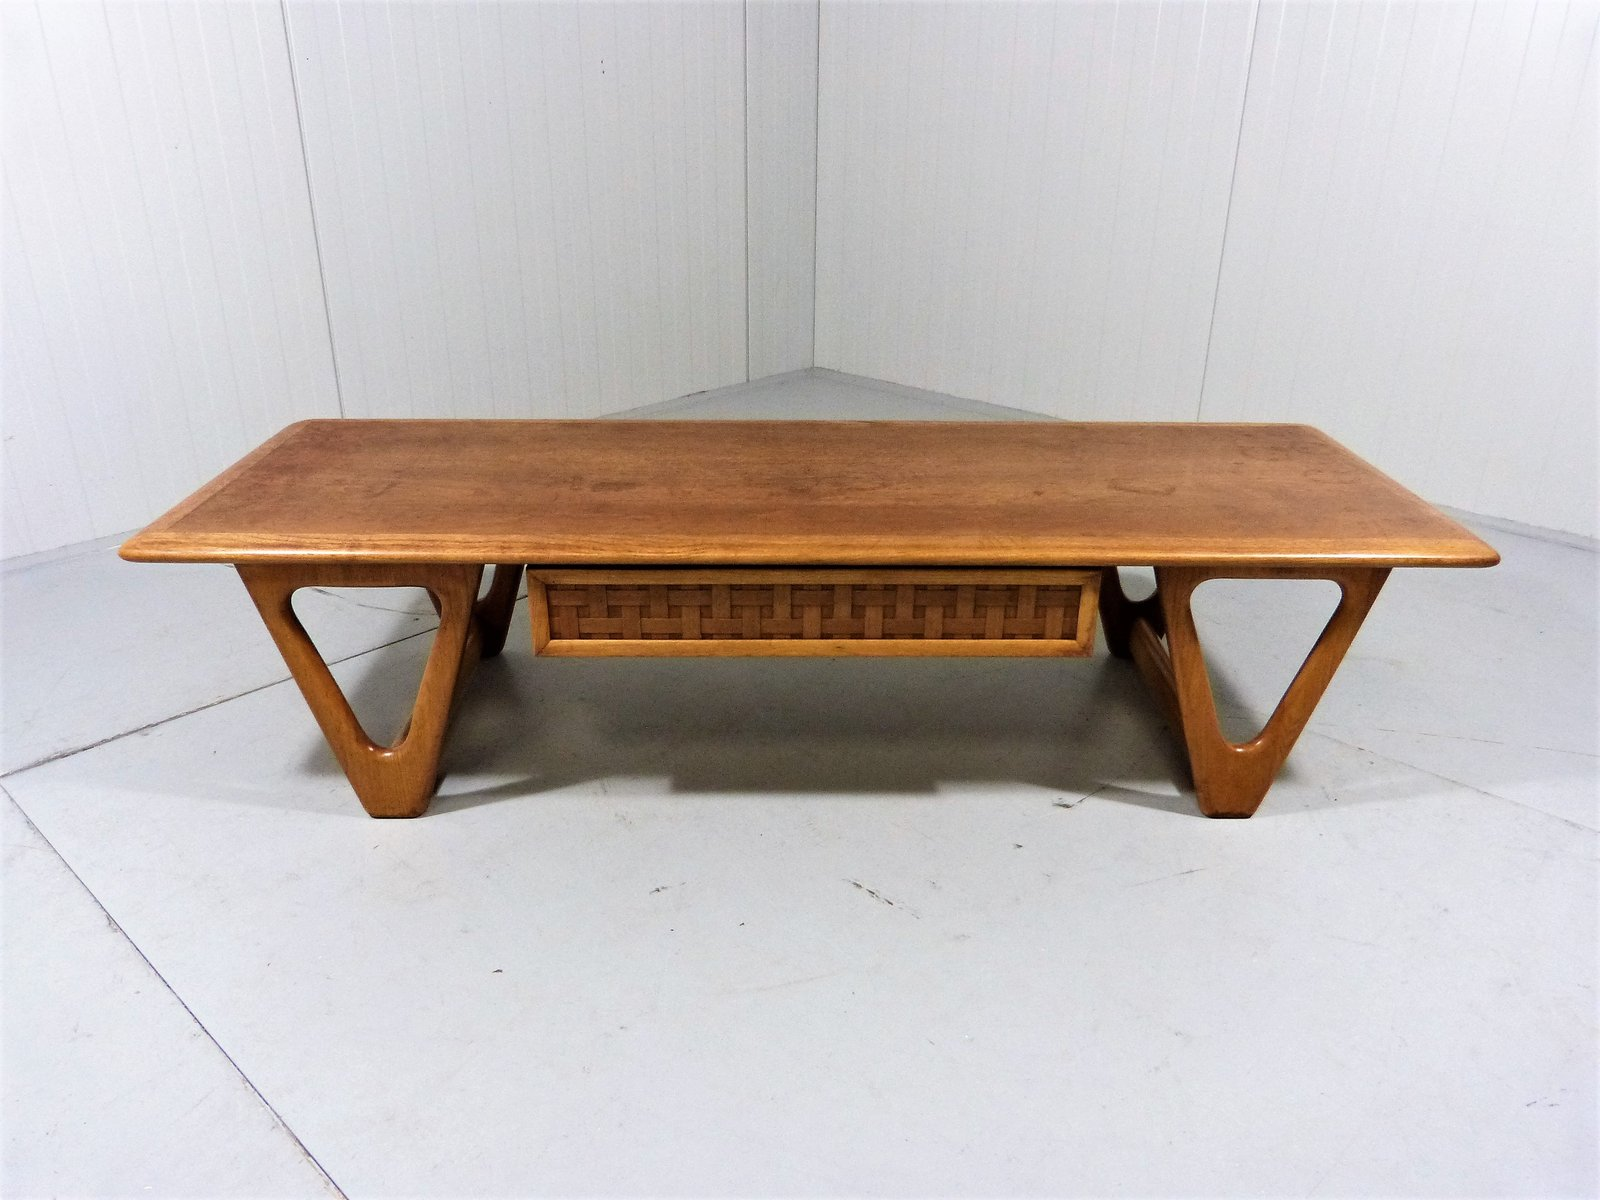 American Coffee Table From Lane Furniture, 1960s